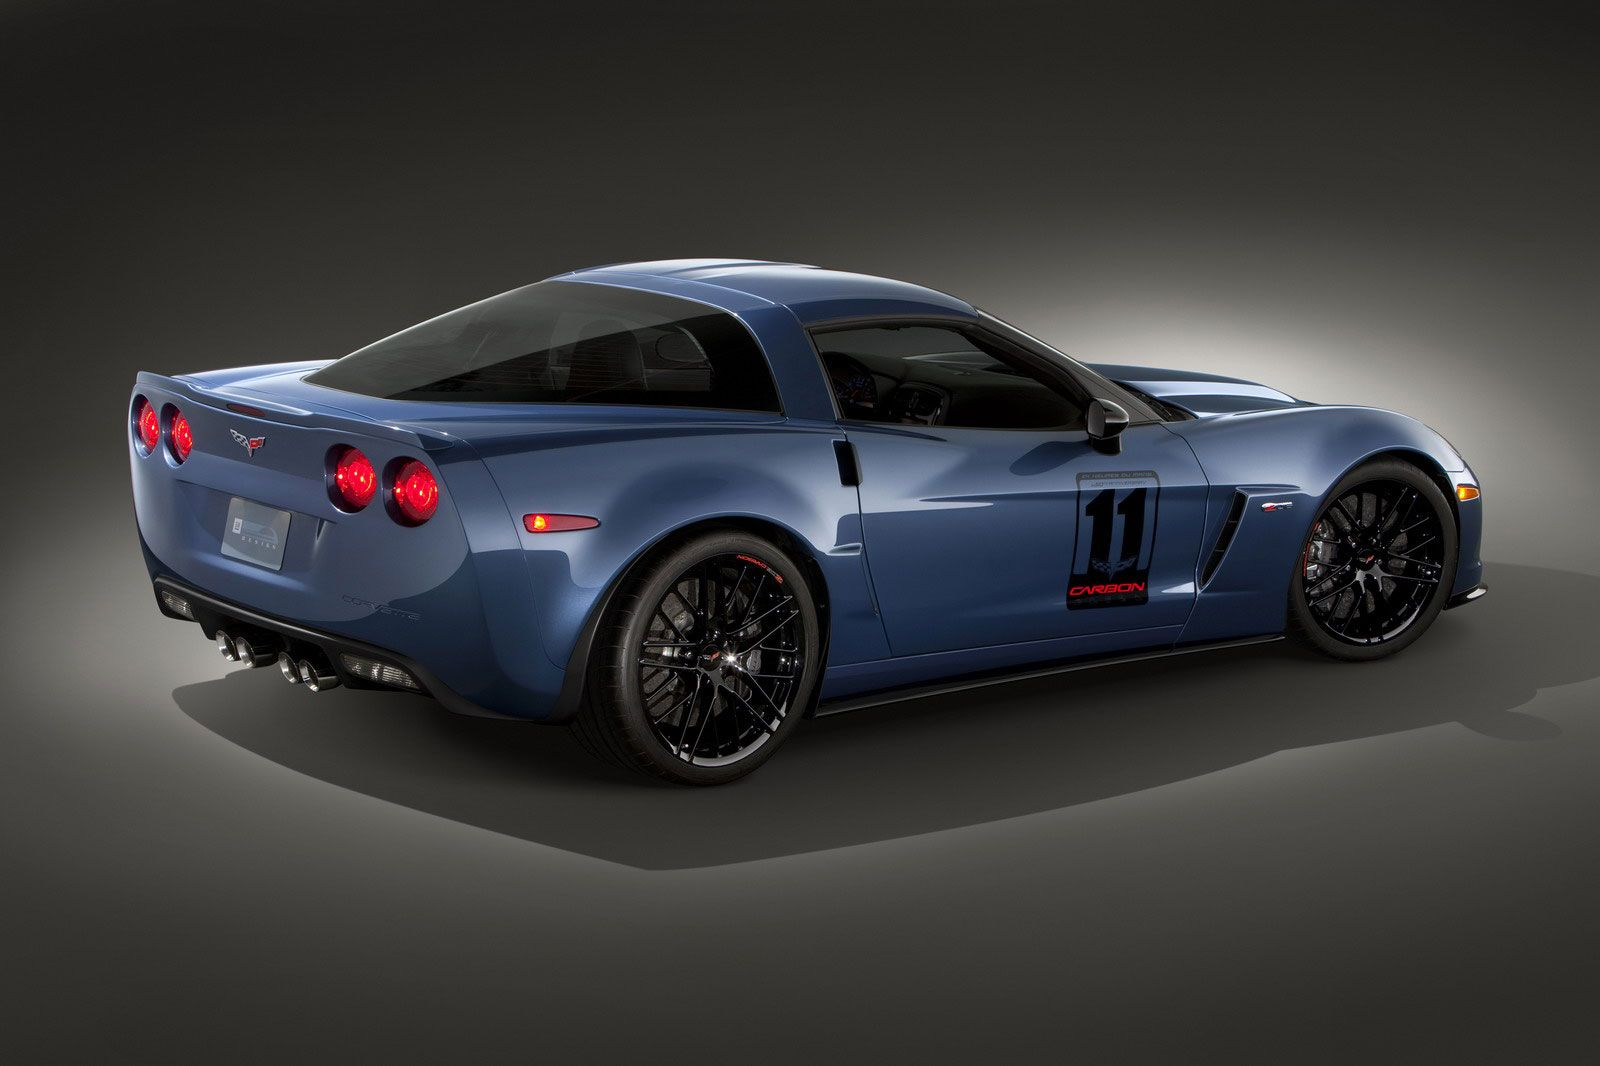 2011 Corvette C6 Z06 Carbon Edition